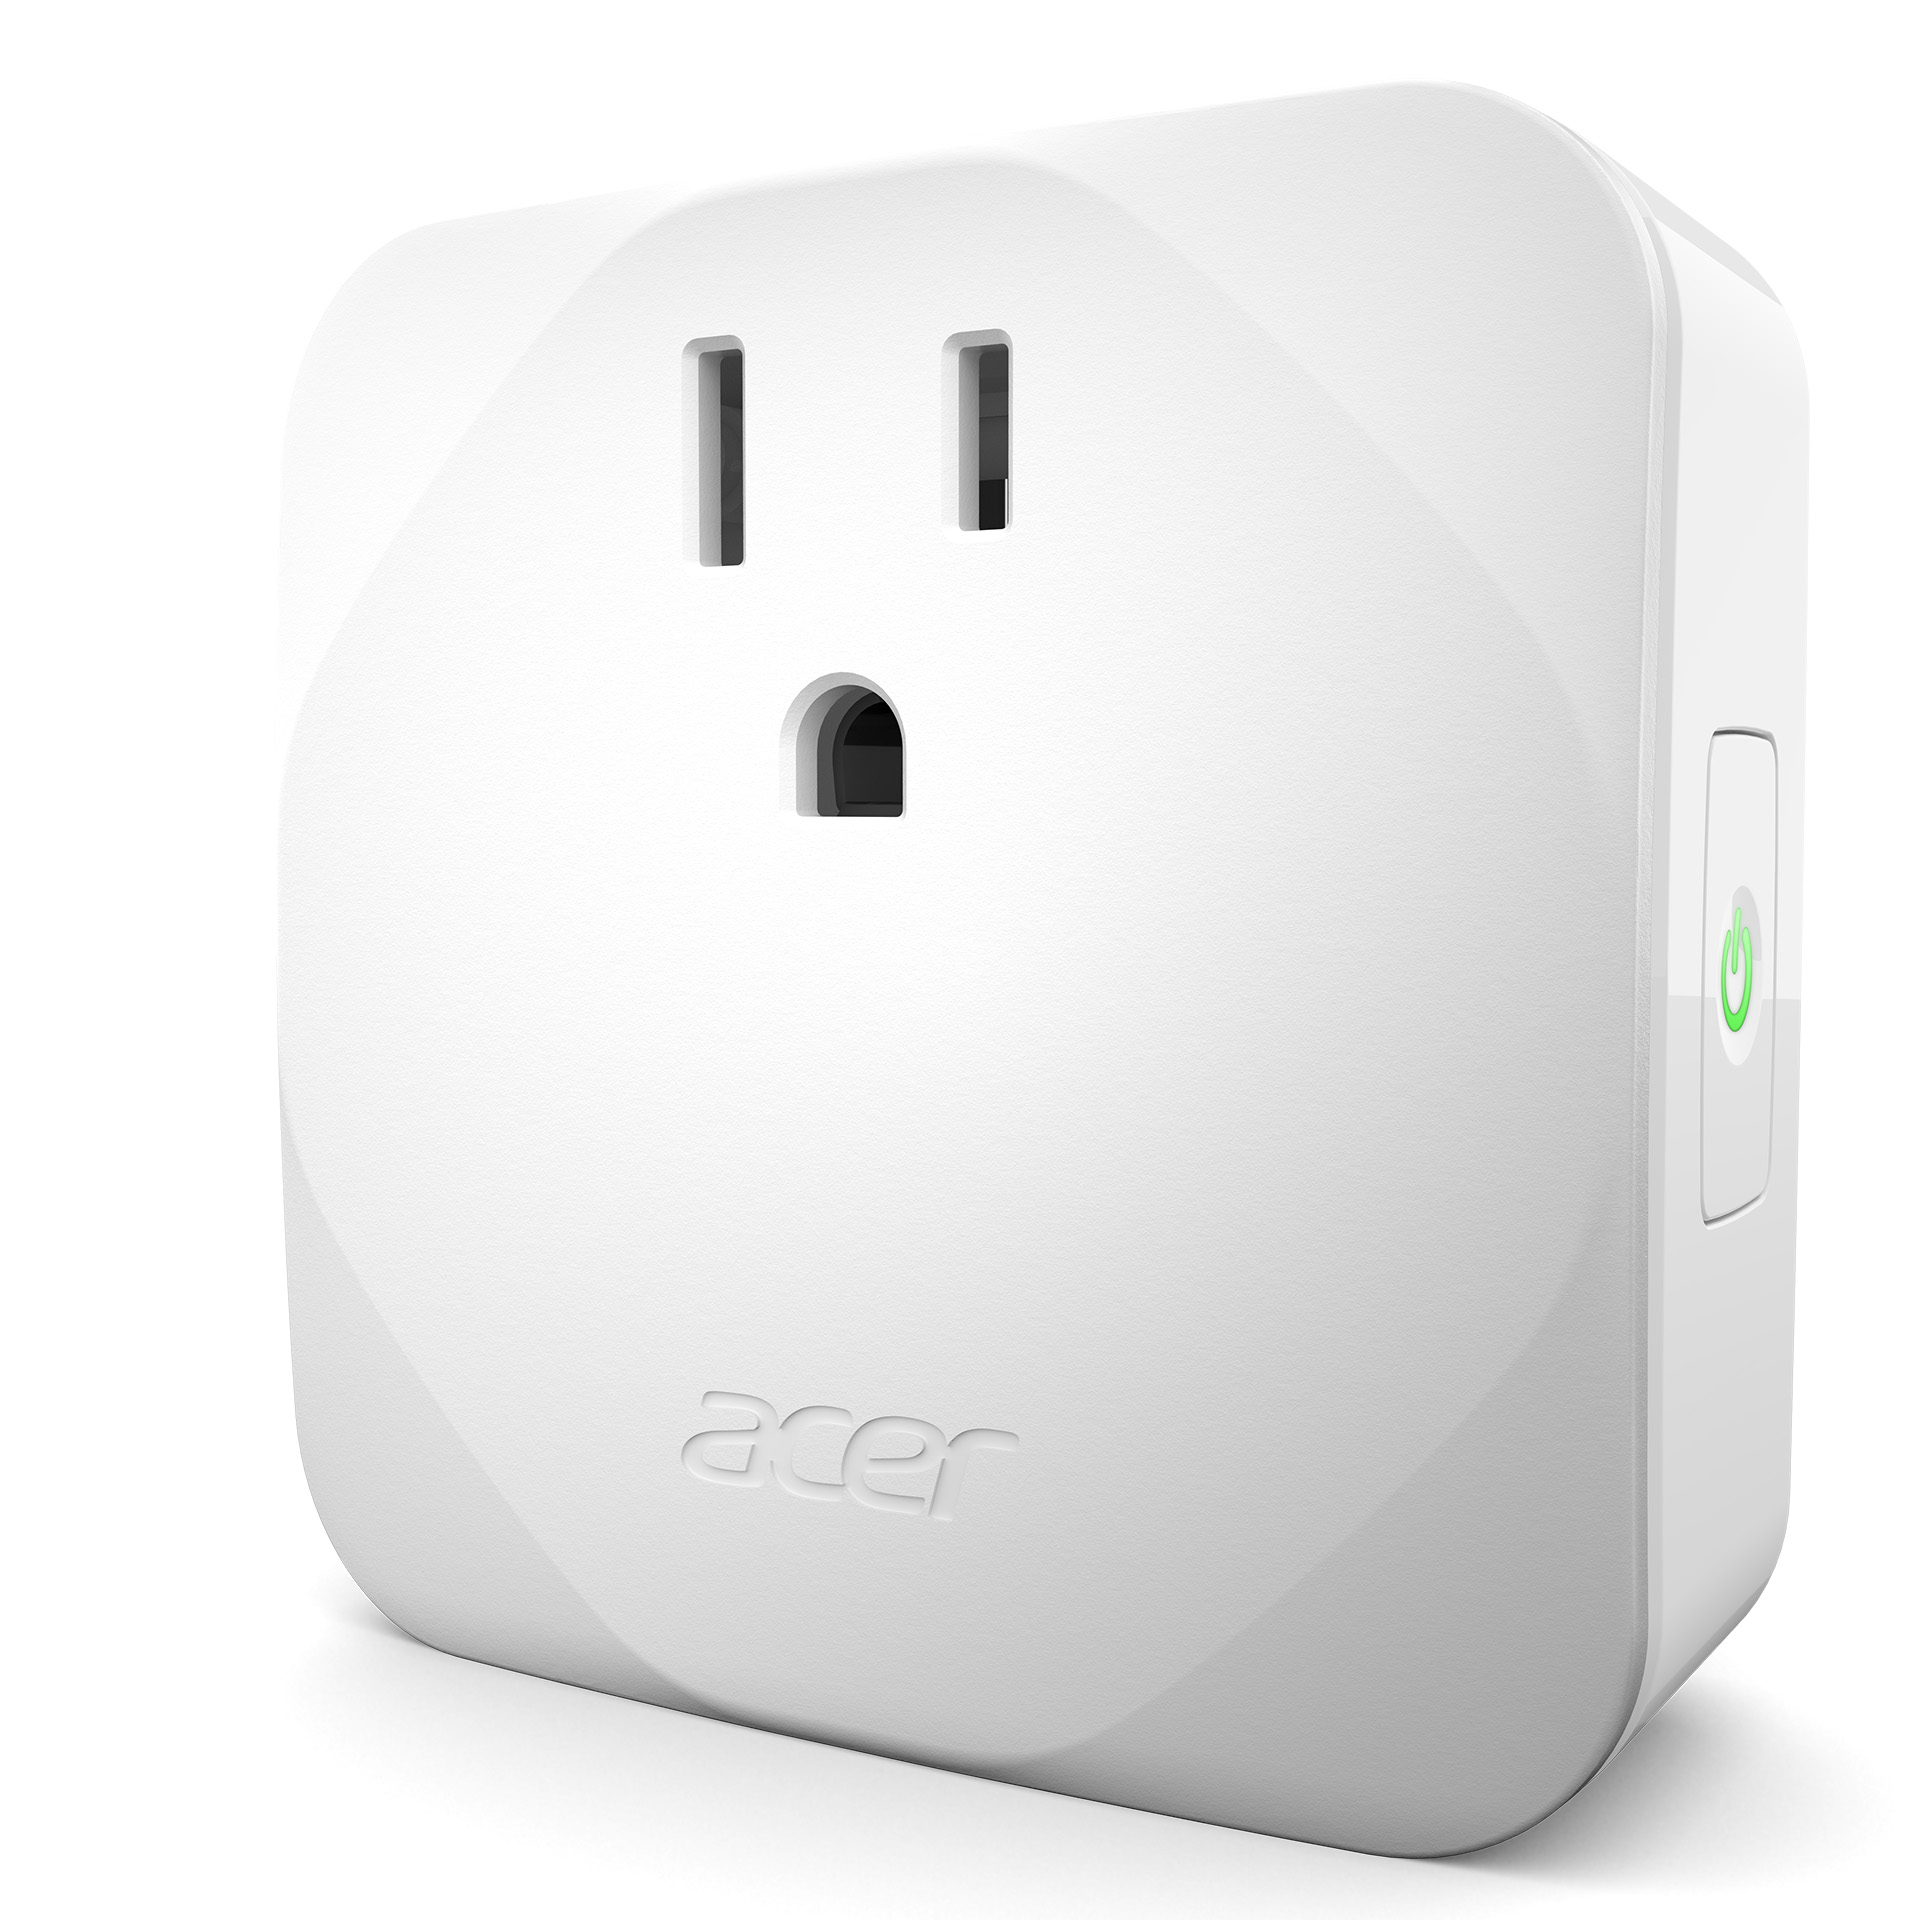 Acer Smart Plug Review: Protecting your Home